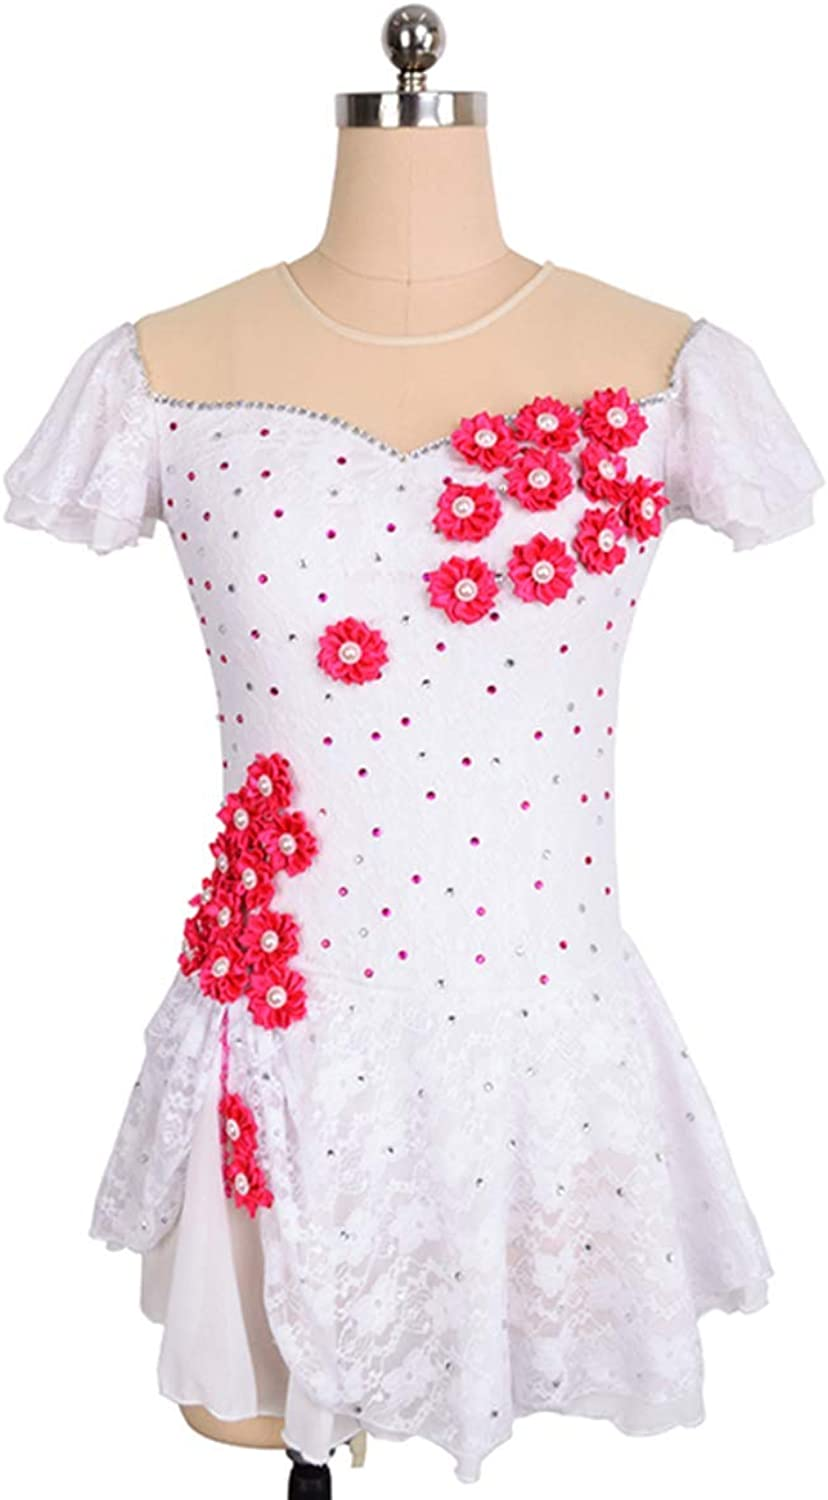 Ice Skating Dress For Girls, Handmade Figure Skating Competition Costume Short Sleeved With Crystals Flower Decor Pearl